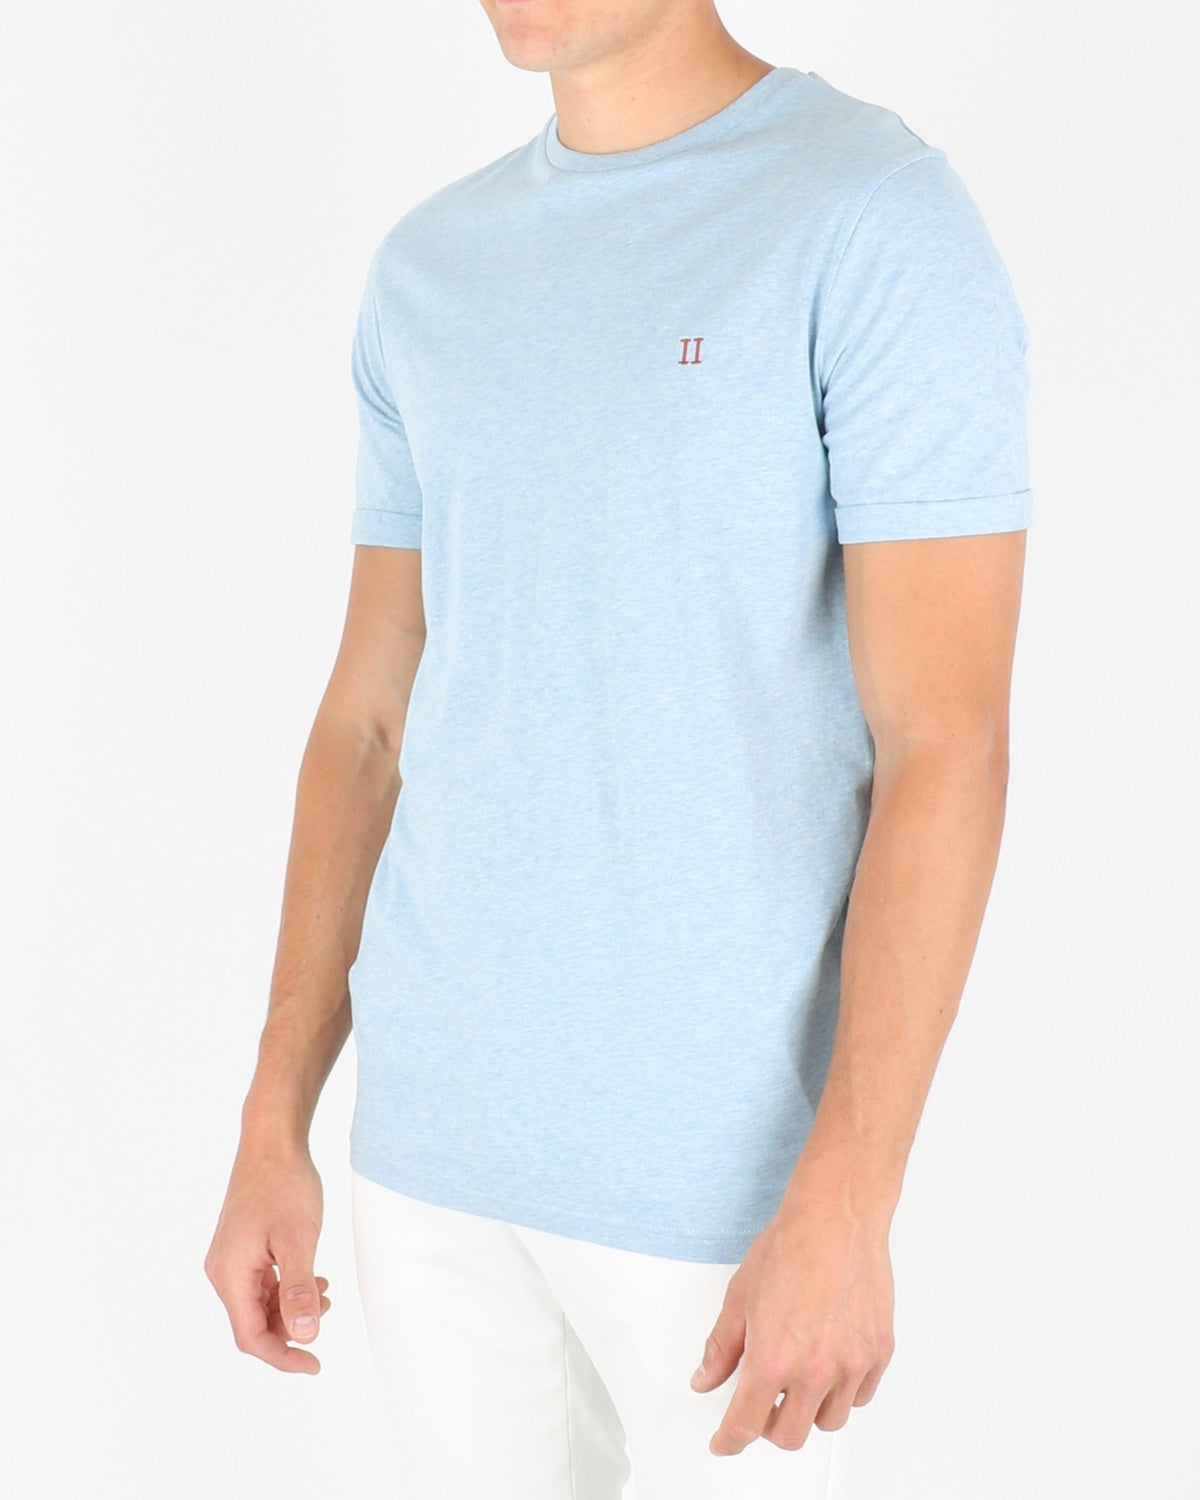 les deux_norregaard t-shirt_light blue melange orange_2_3